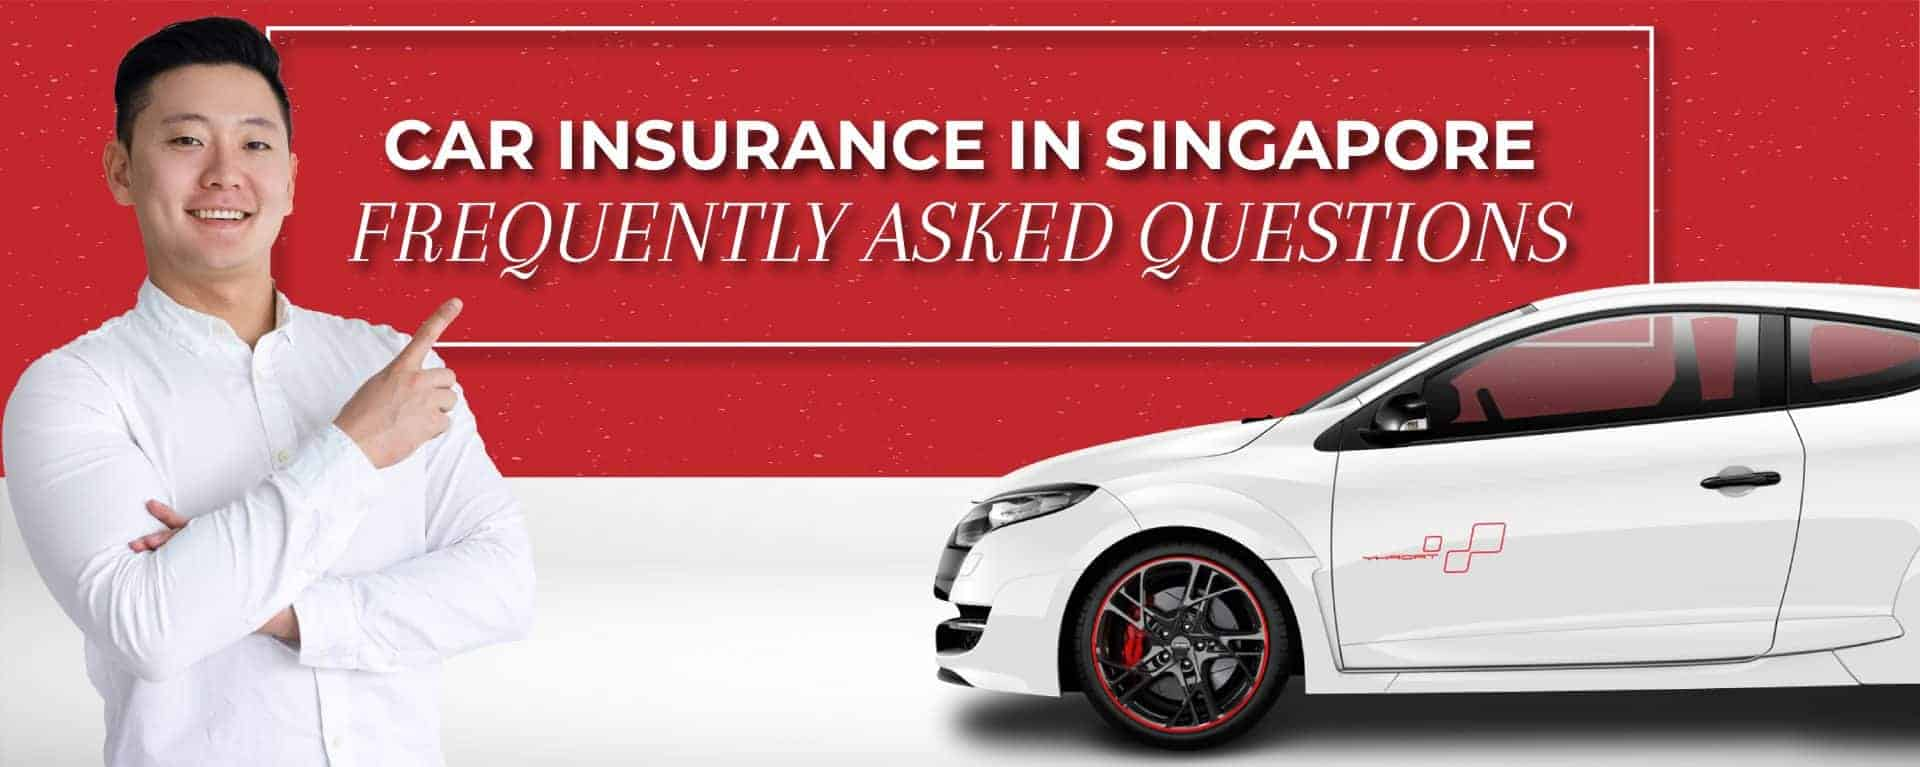 Car insurance in Singapore FAQ